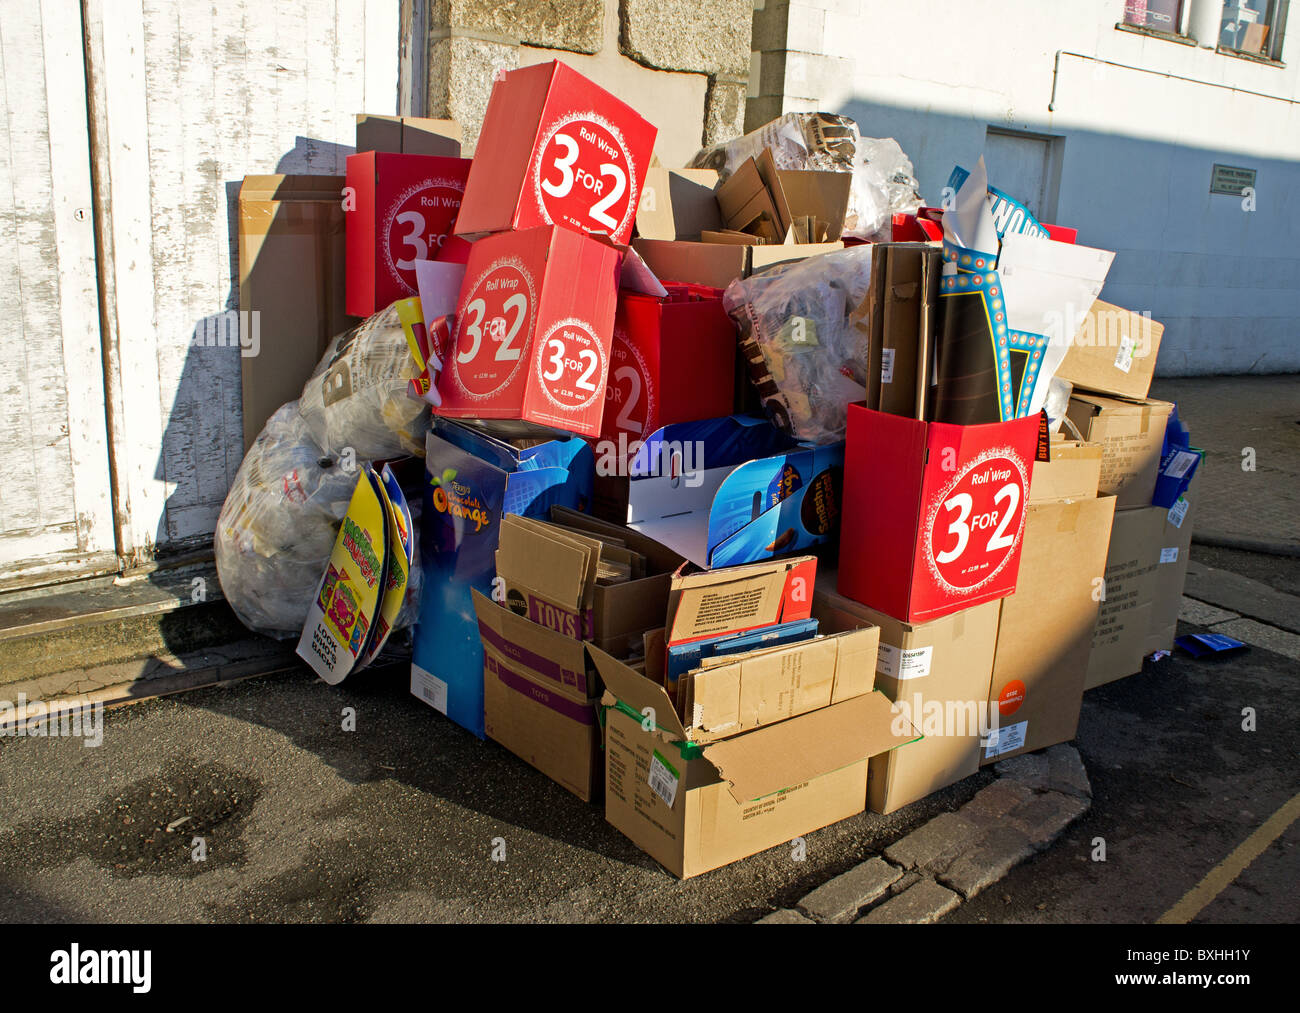 Waste cardboard ready to be collected for recycling, Uk - Stock Image